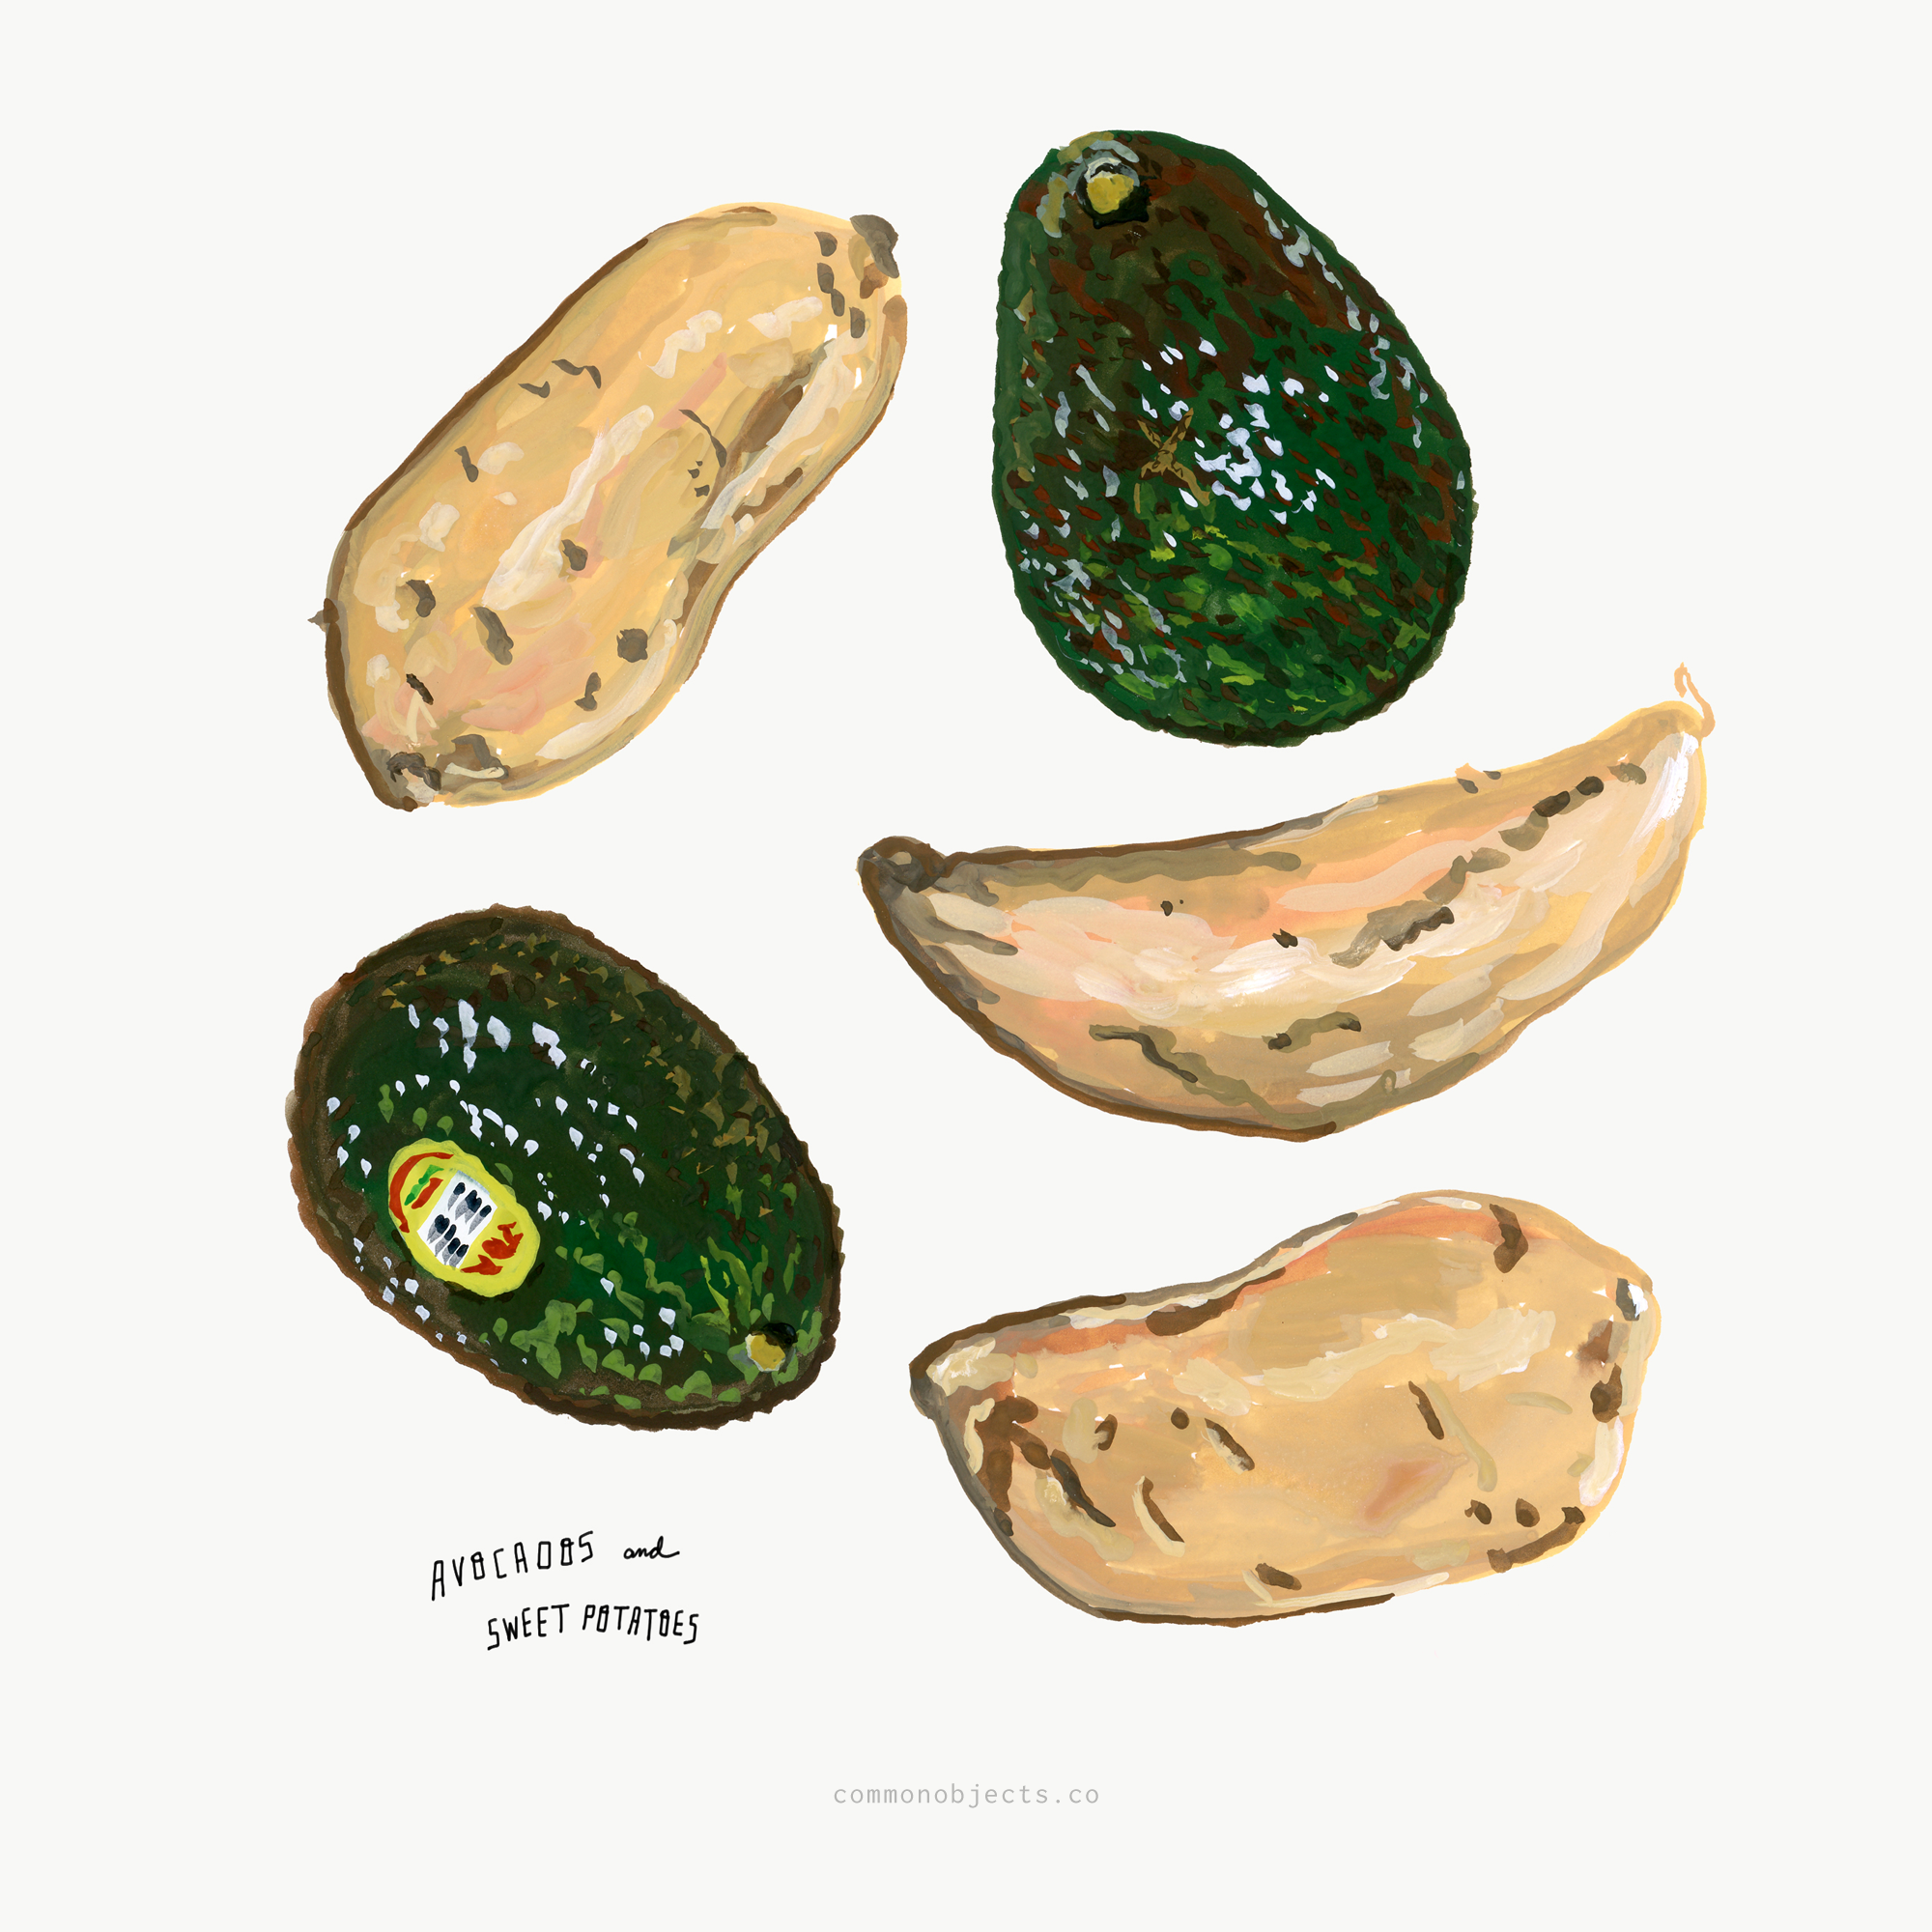 avocados and sweet potatoes